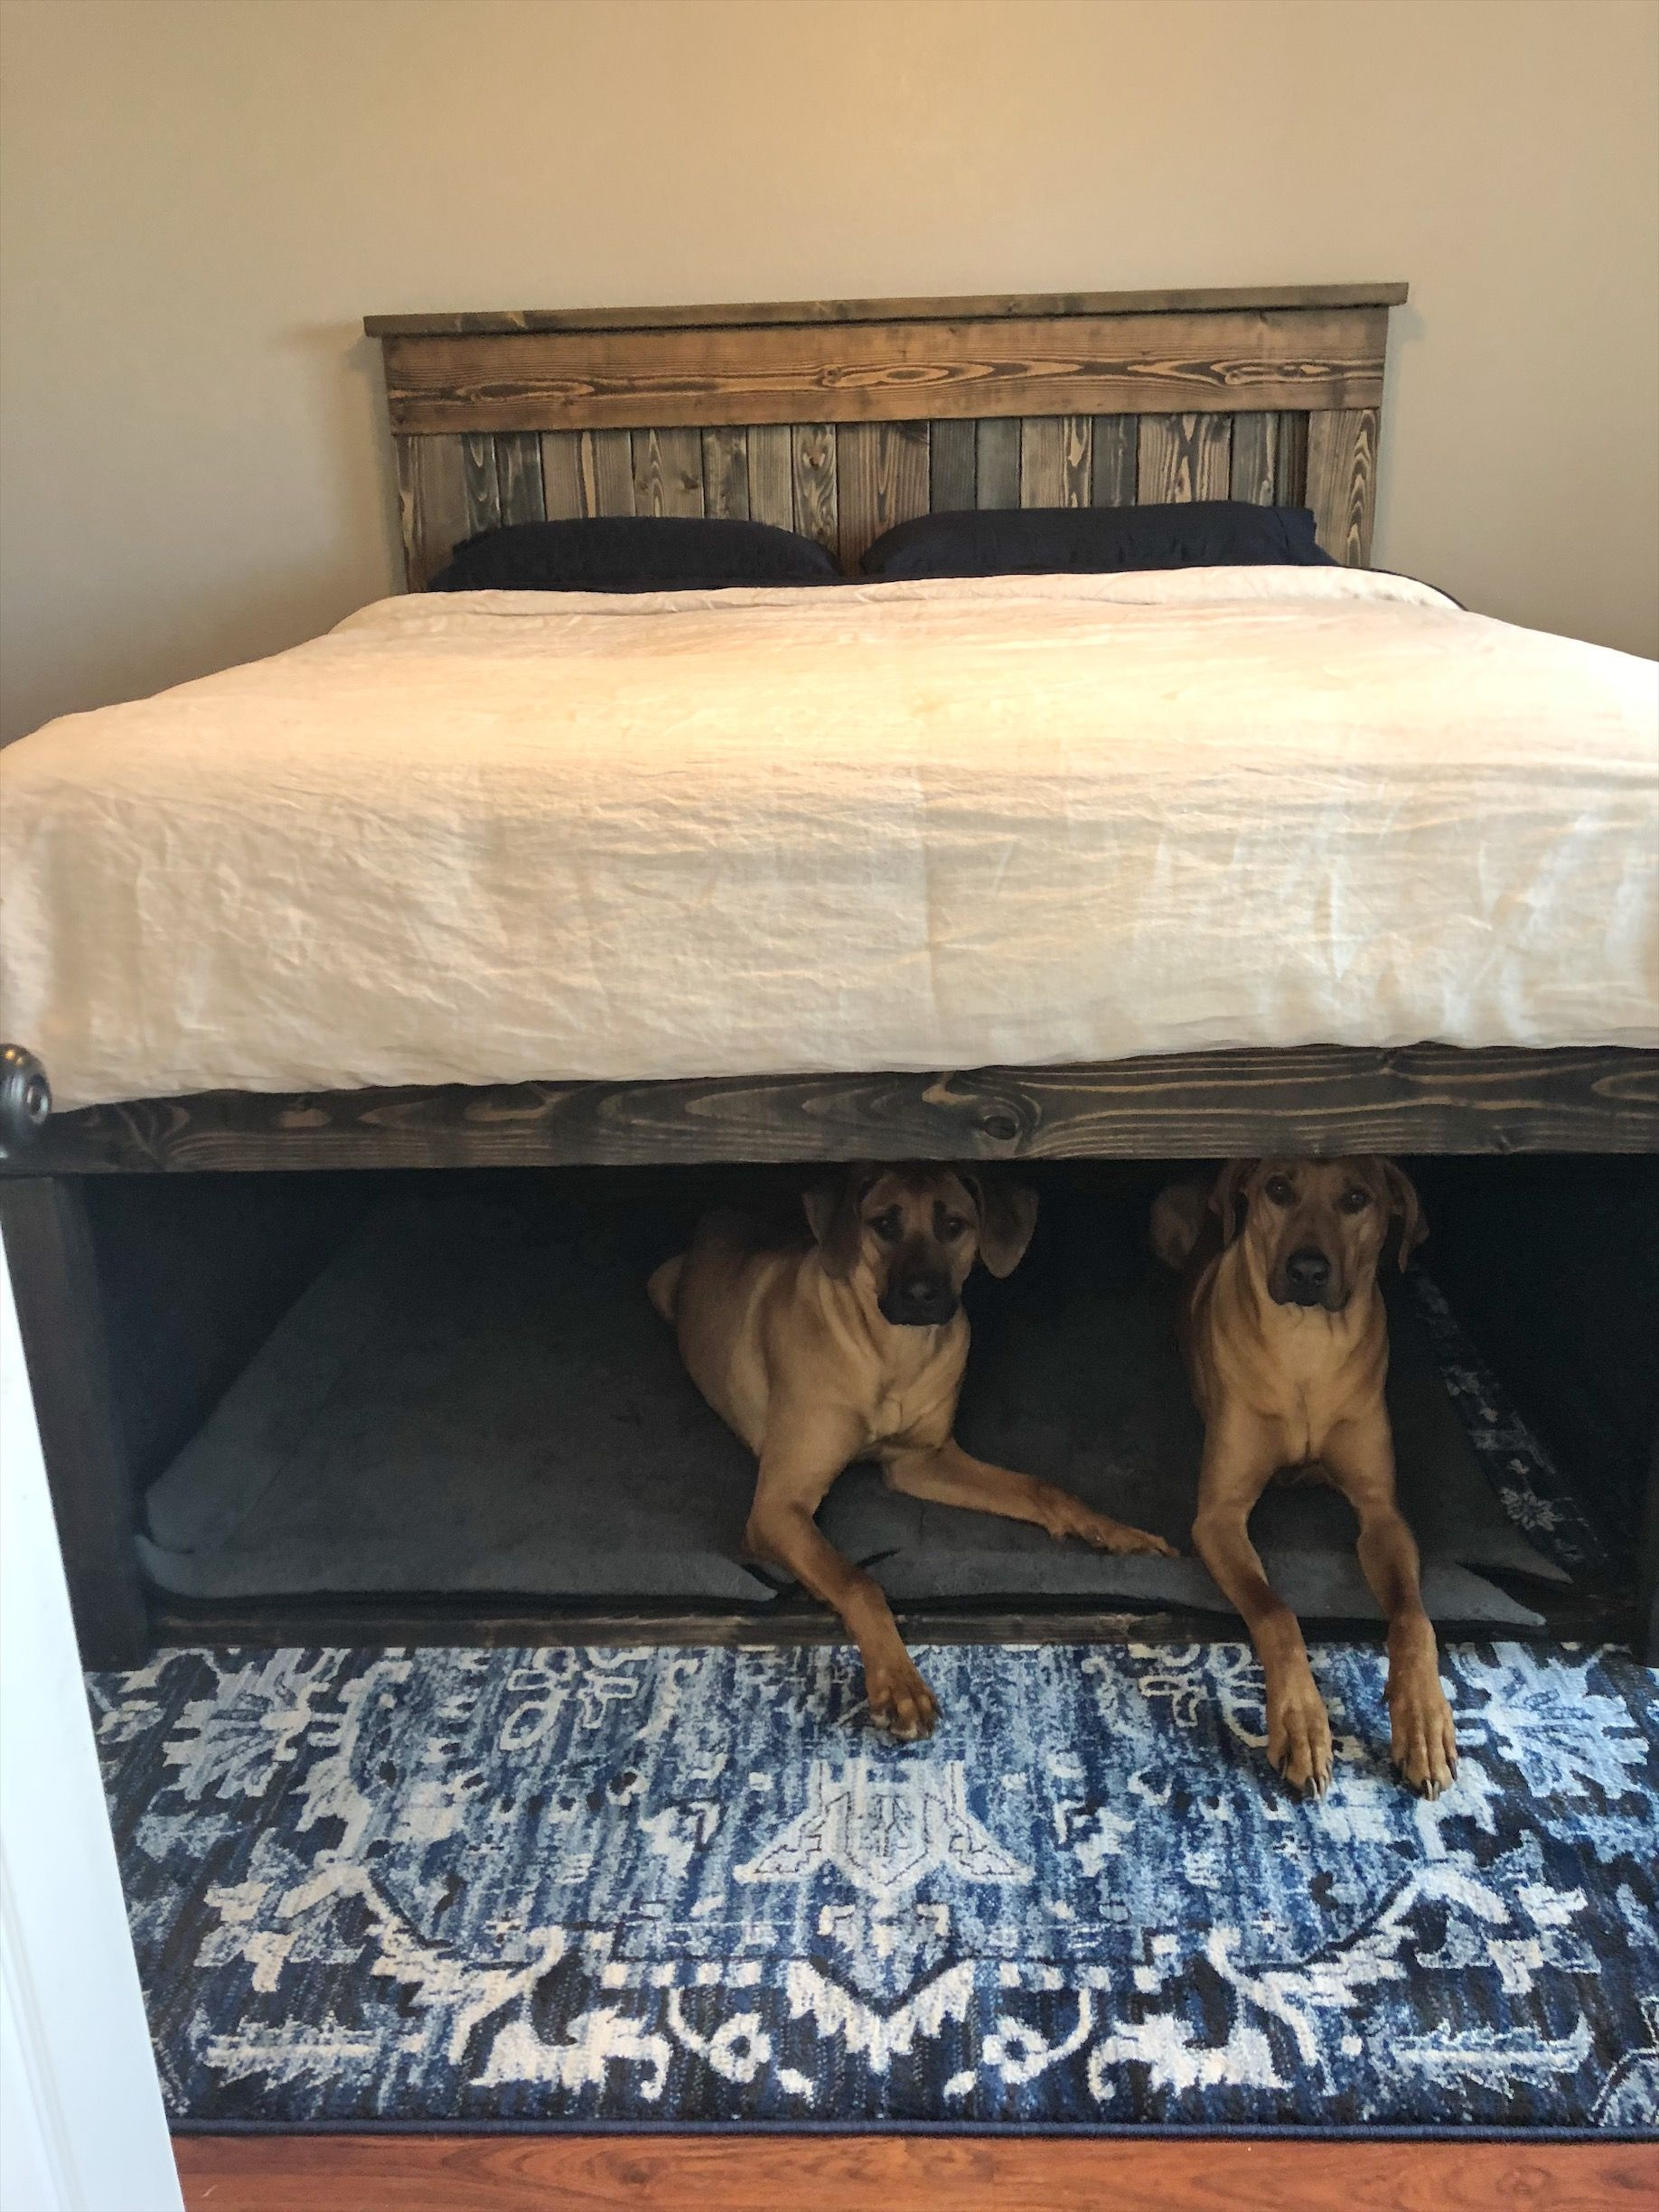 California King Wooden Bed With Dog Den Underneath